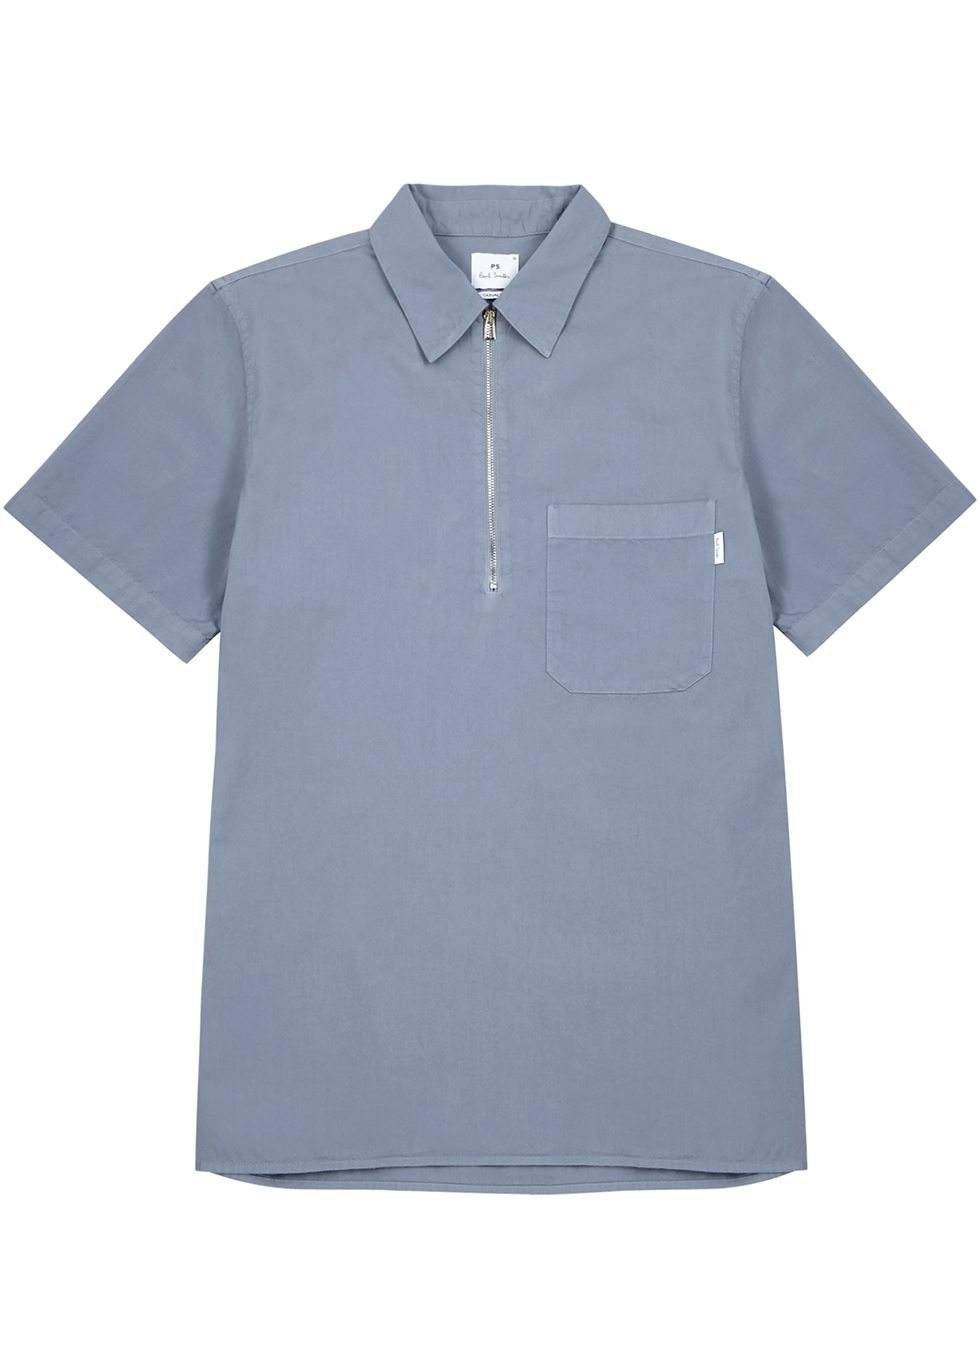 Light blue half-zip cotton shirt